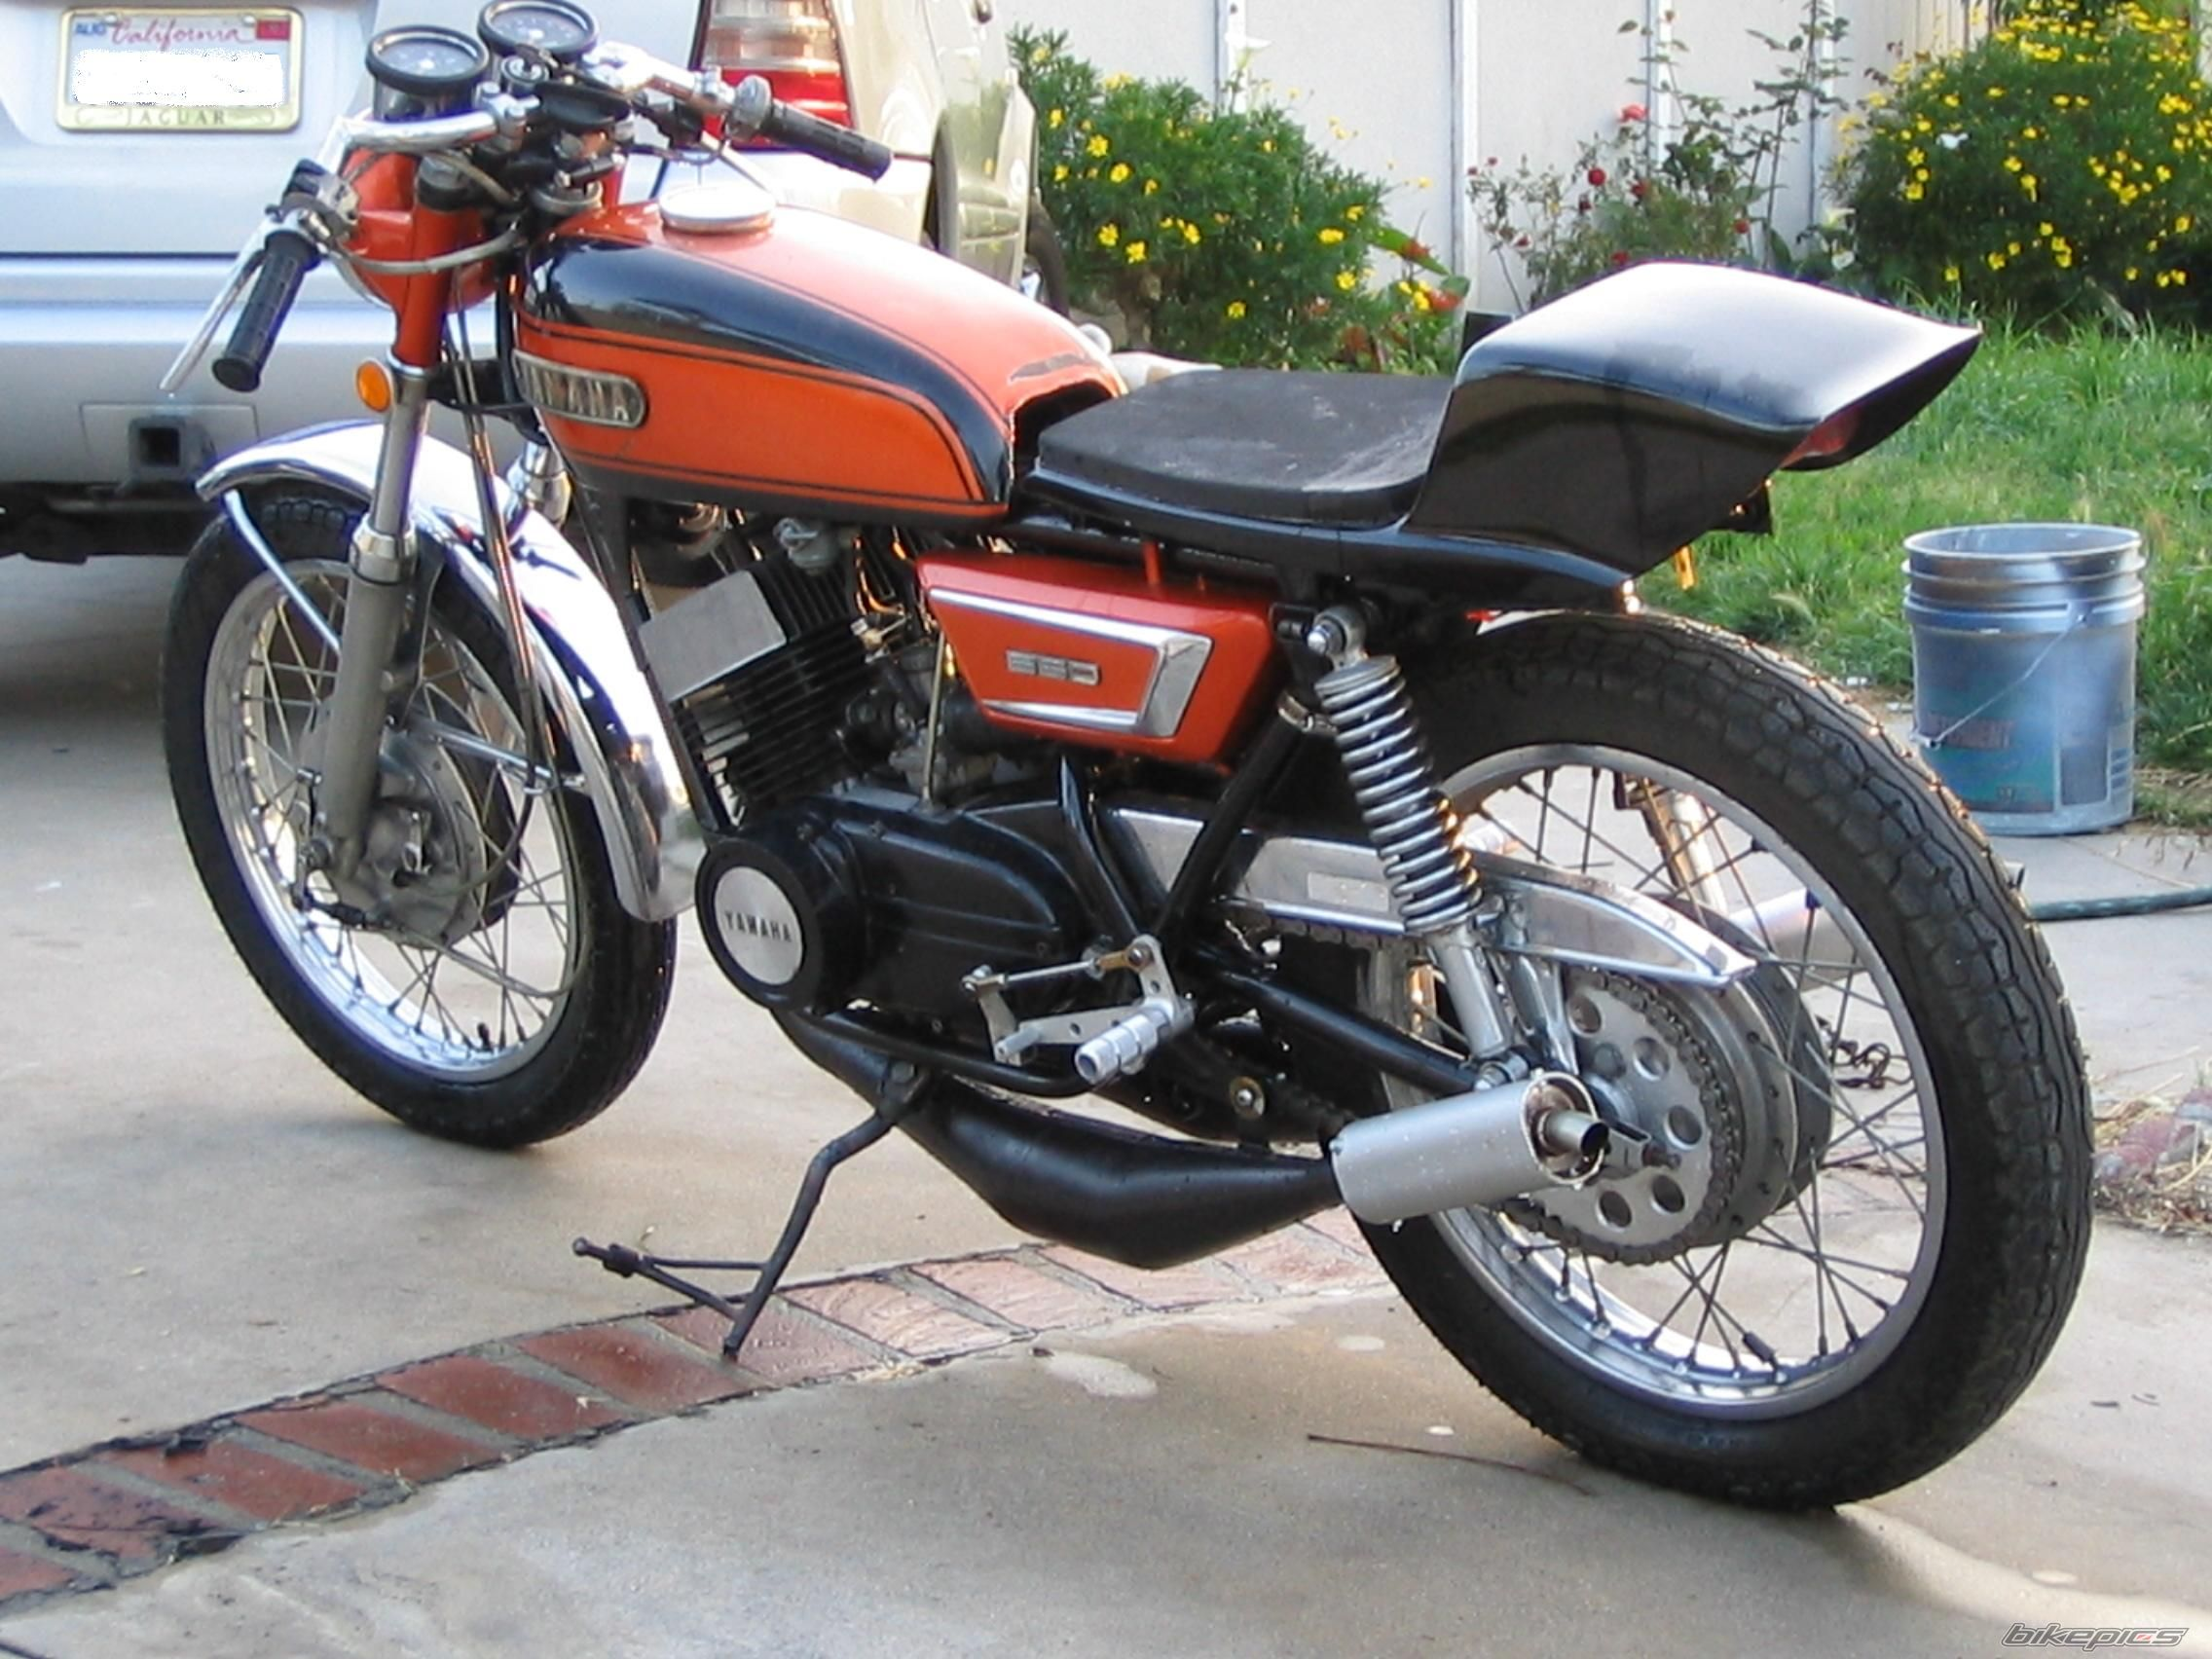 1972 YAMAHA RD 350 | Picture 643117 motorcycle photo